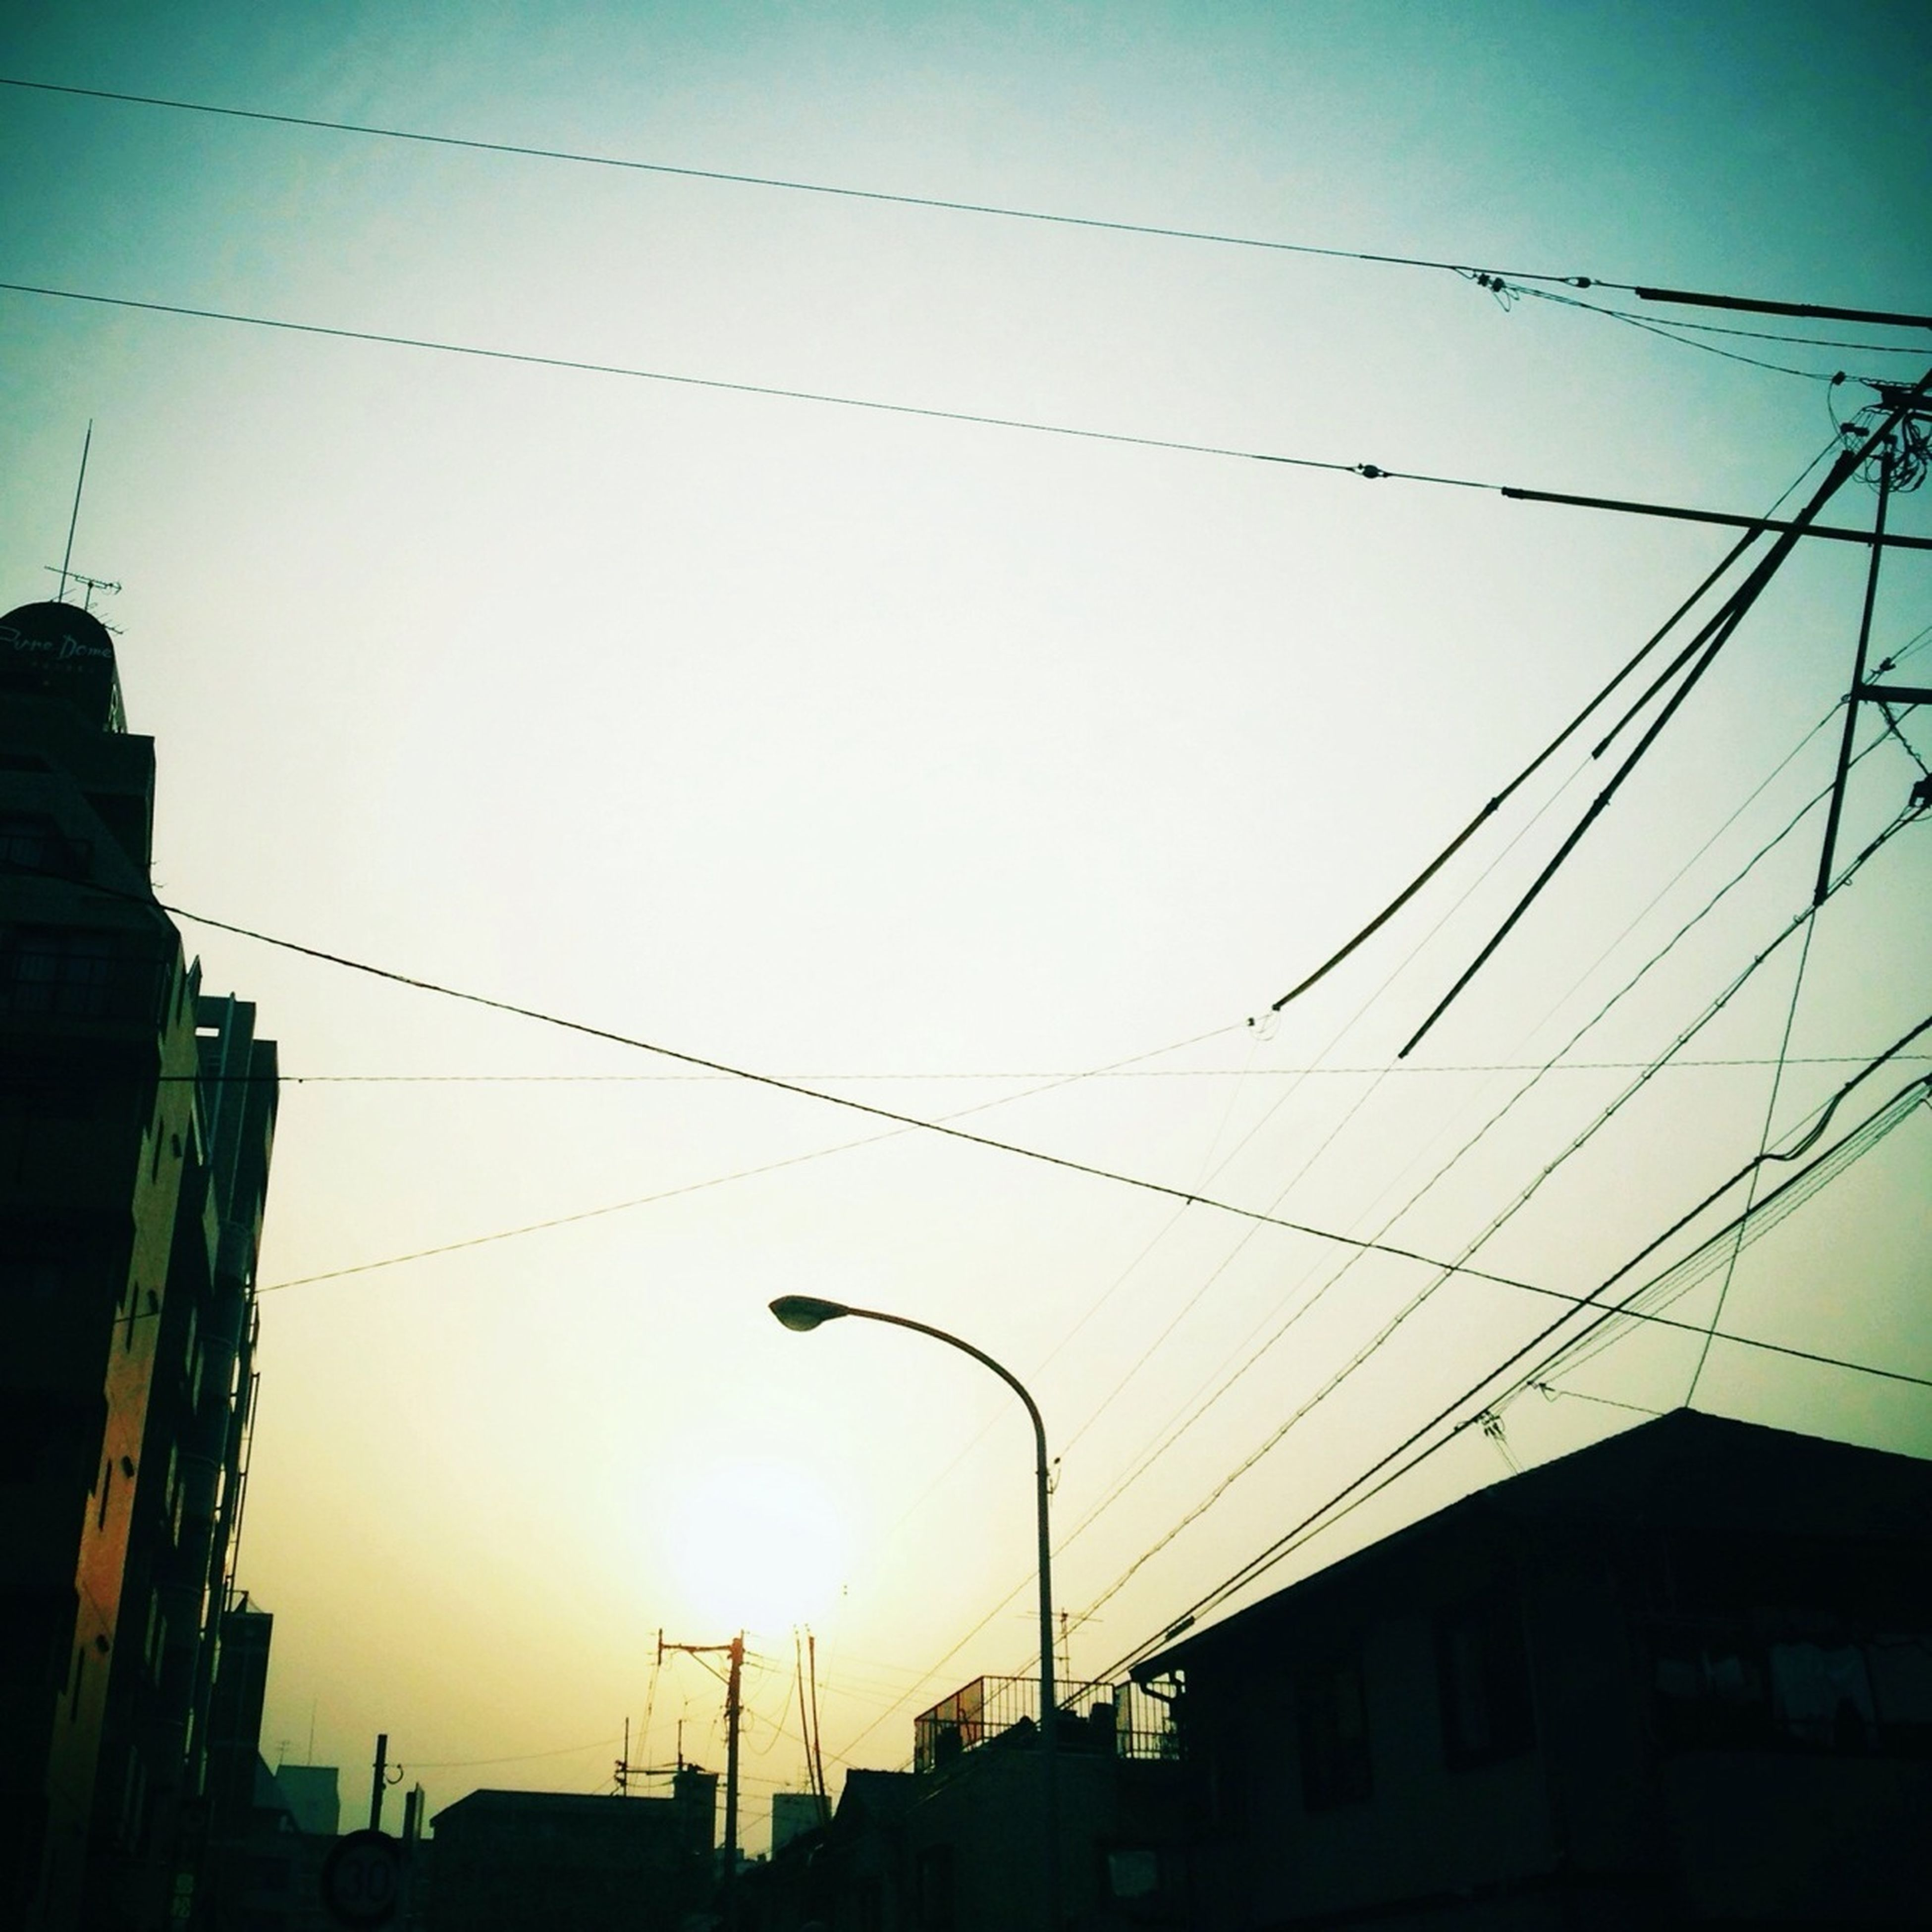 power line, architecture, building exterior, built structure, cable, sunset, low angle view, electricity pylon, electricity, silhouette, power supply, connection, sky, power cable, residential structure, house, building, residential building, dusk, city